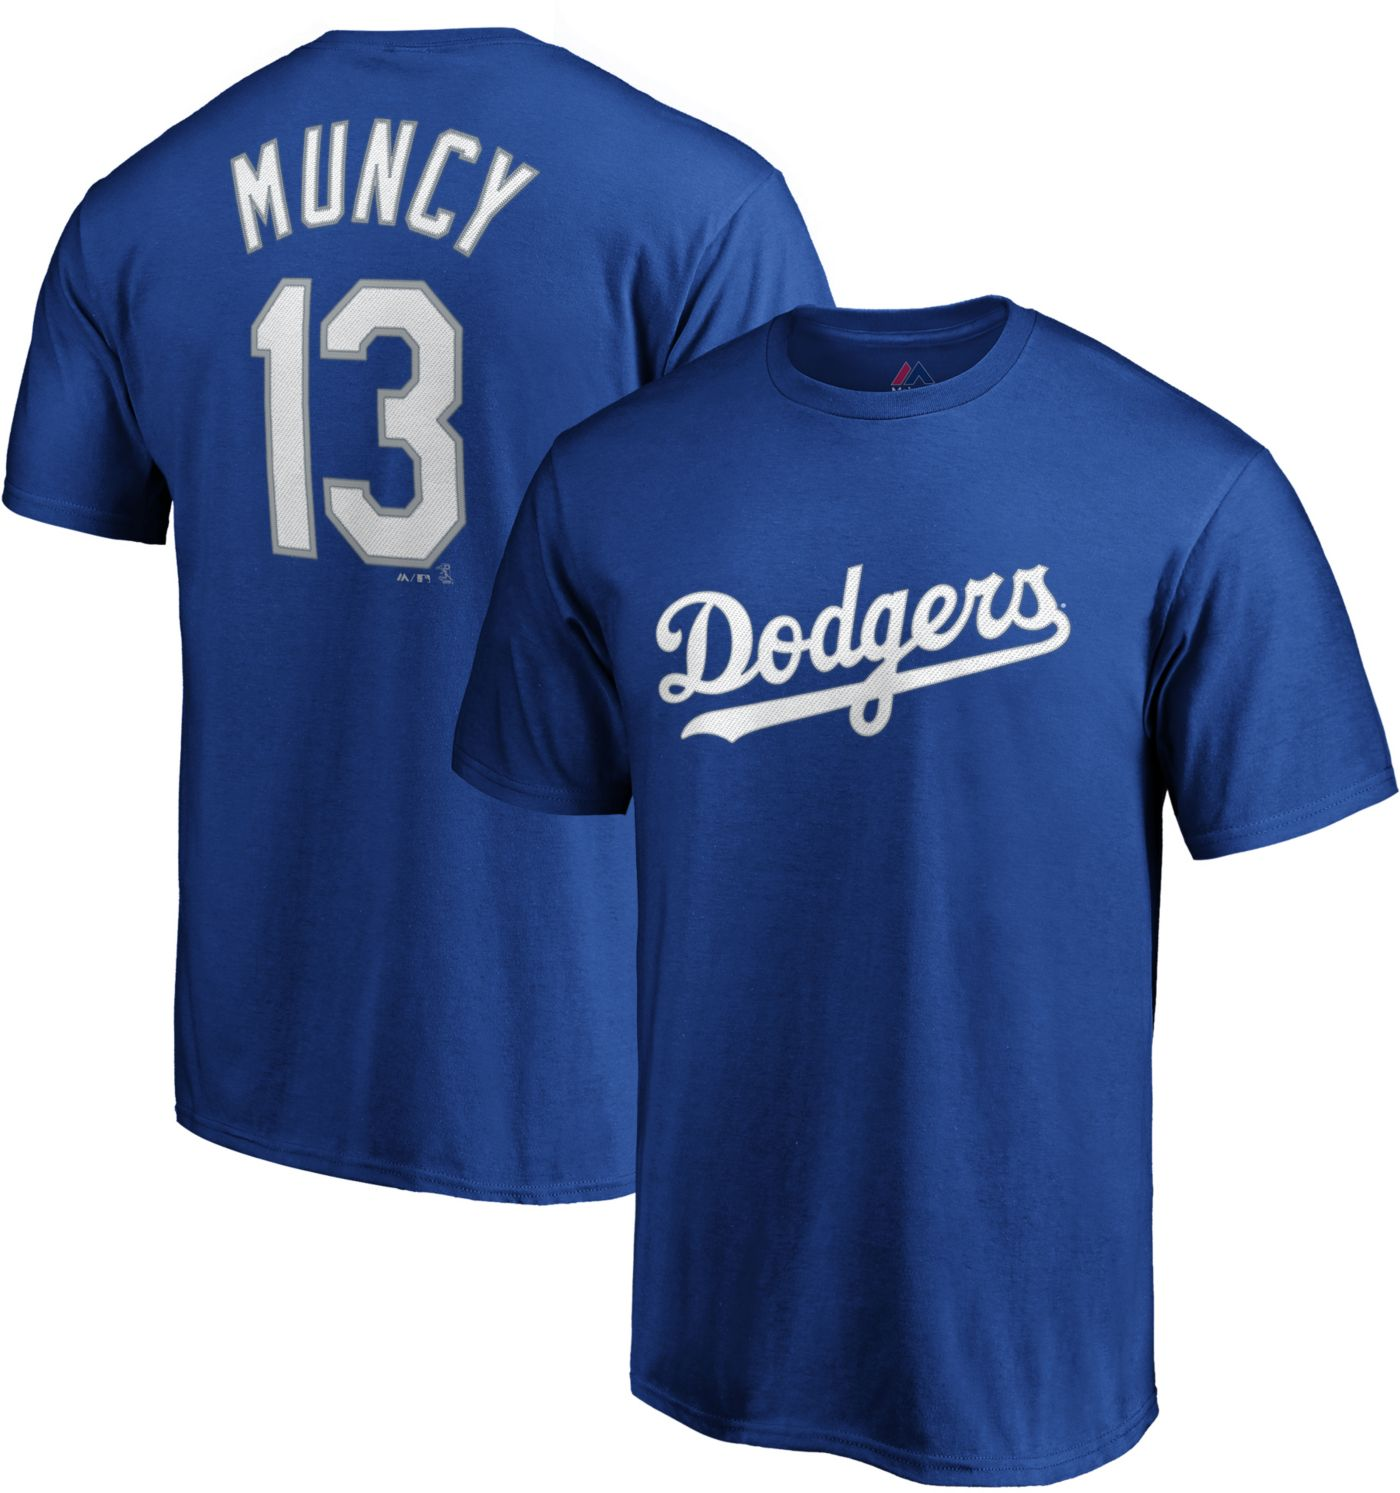 on sale 2a646 a656c Majestic Youth Los Angeles Dodgers Max Muncy #13 Royal T-Shirt